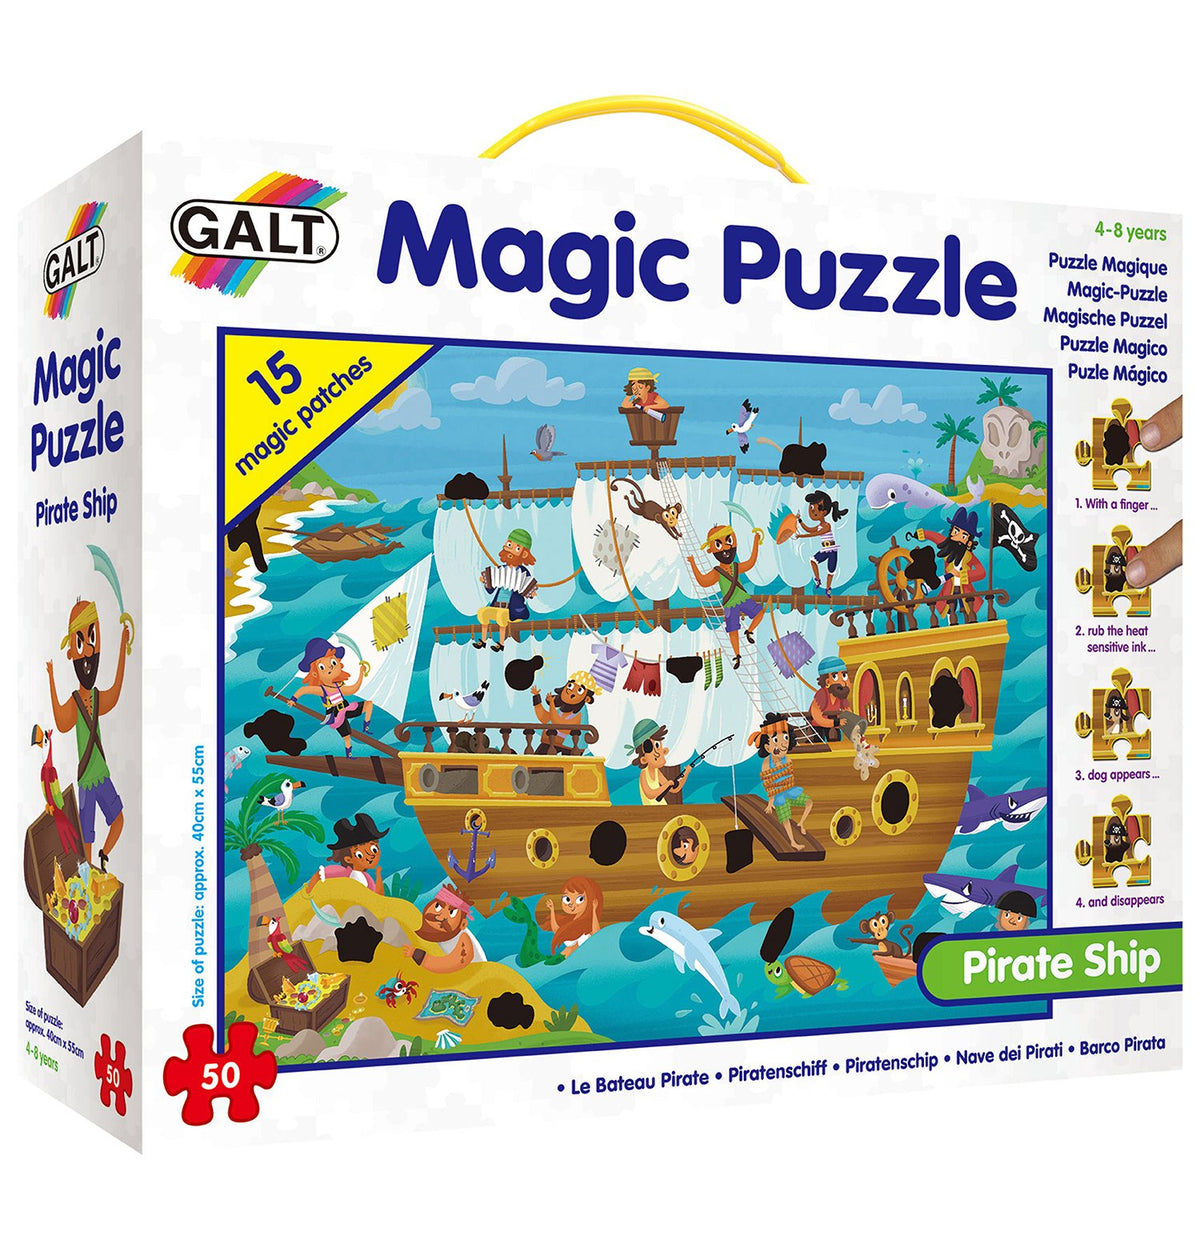 Magic Puzzles - Galt